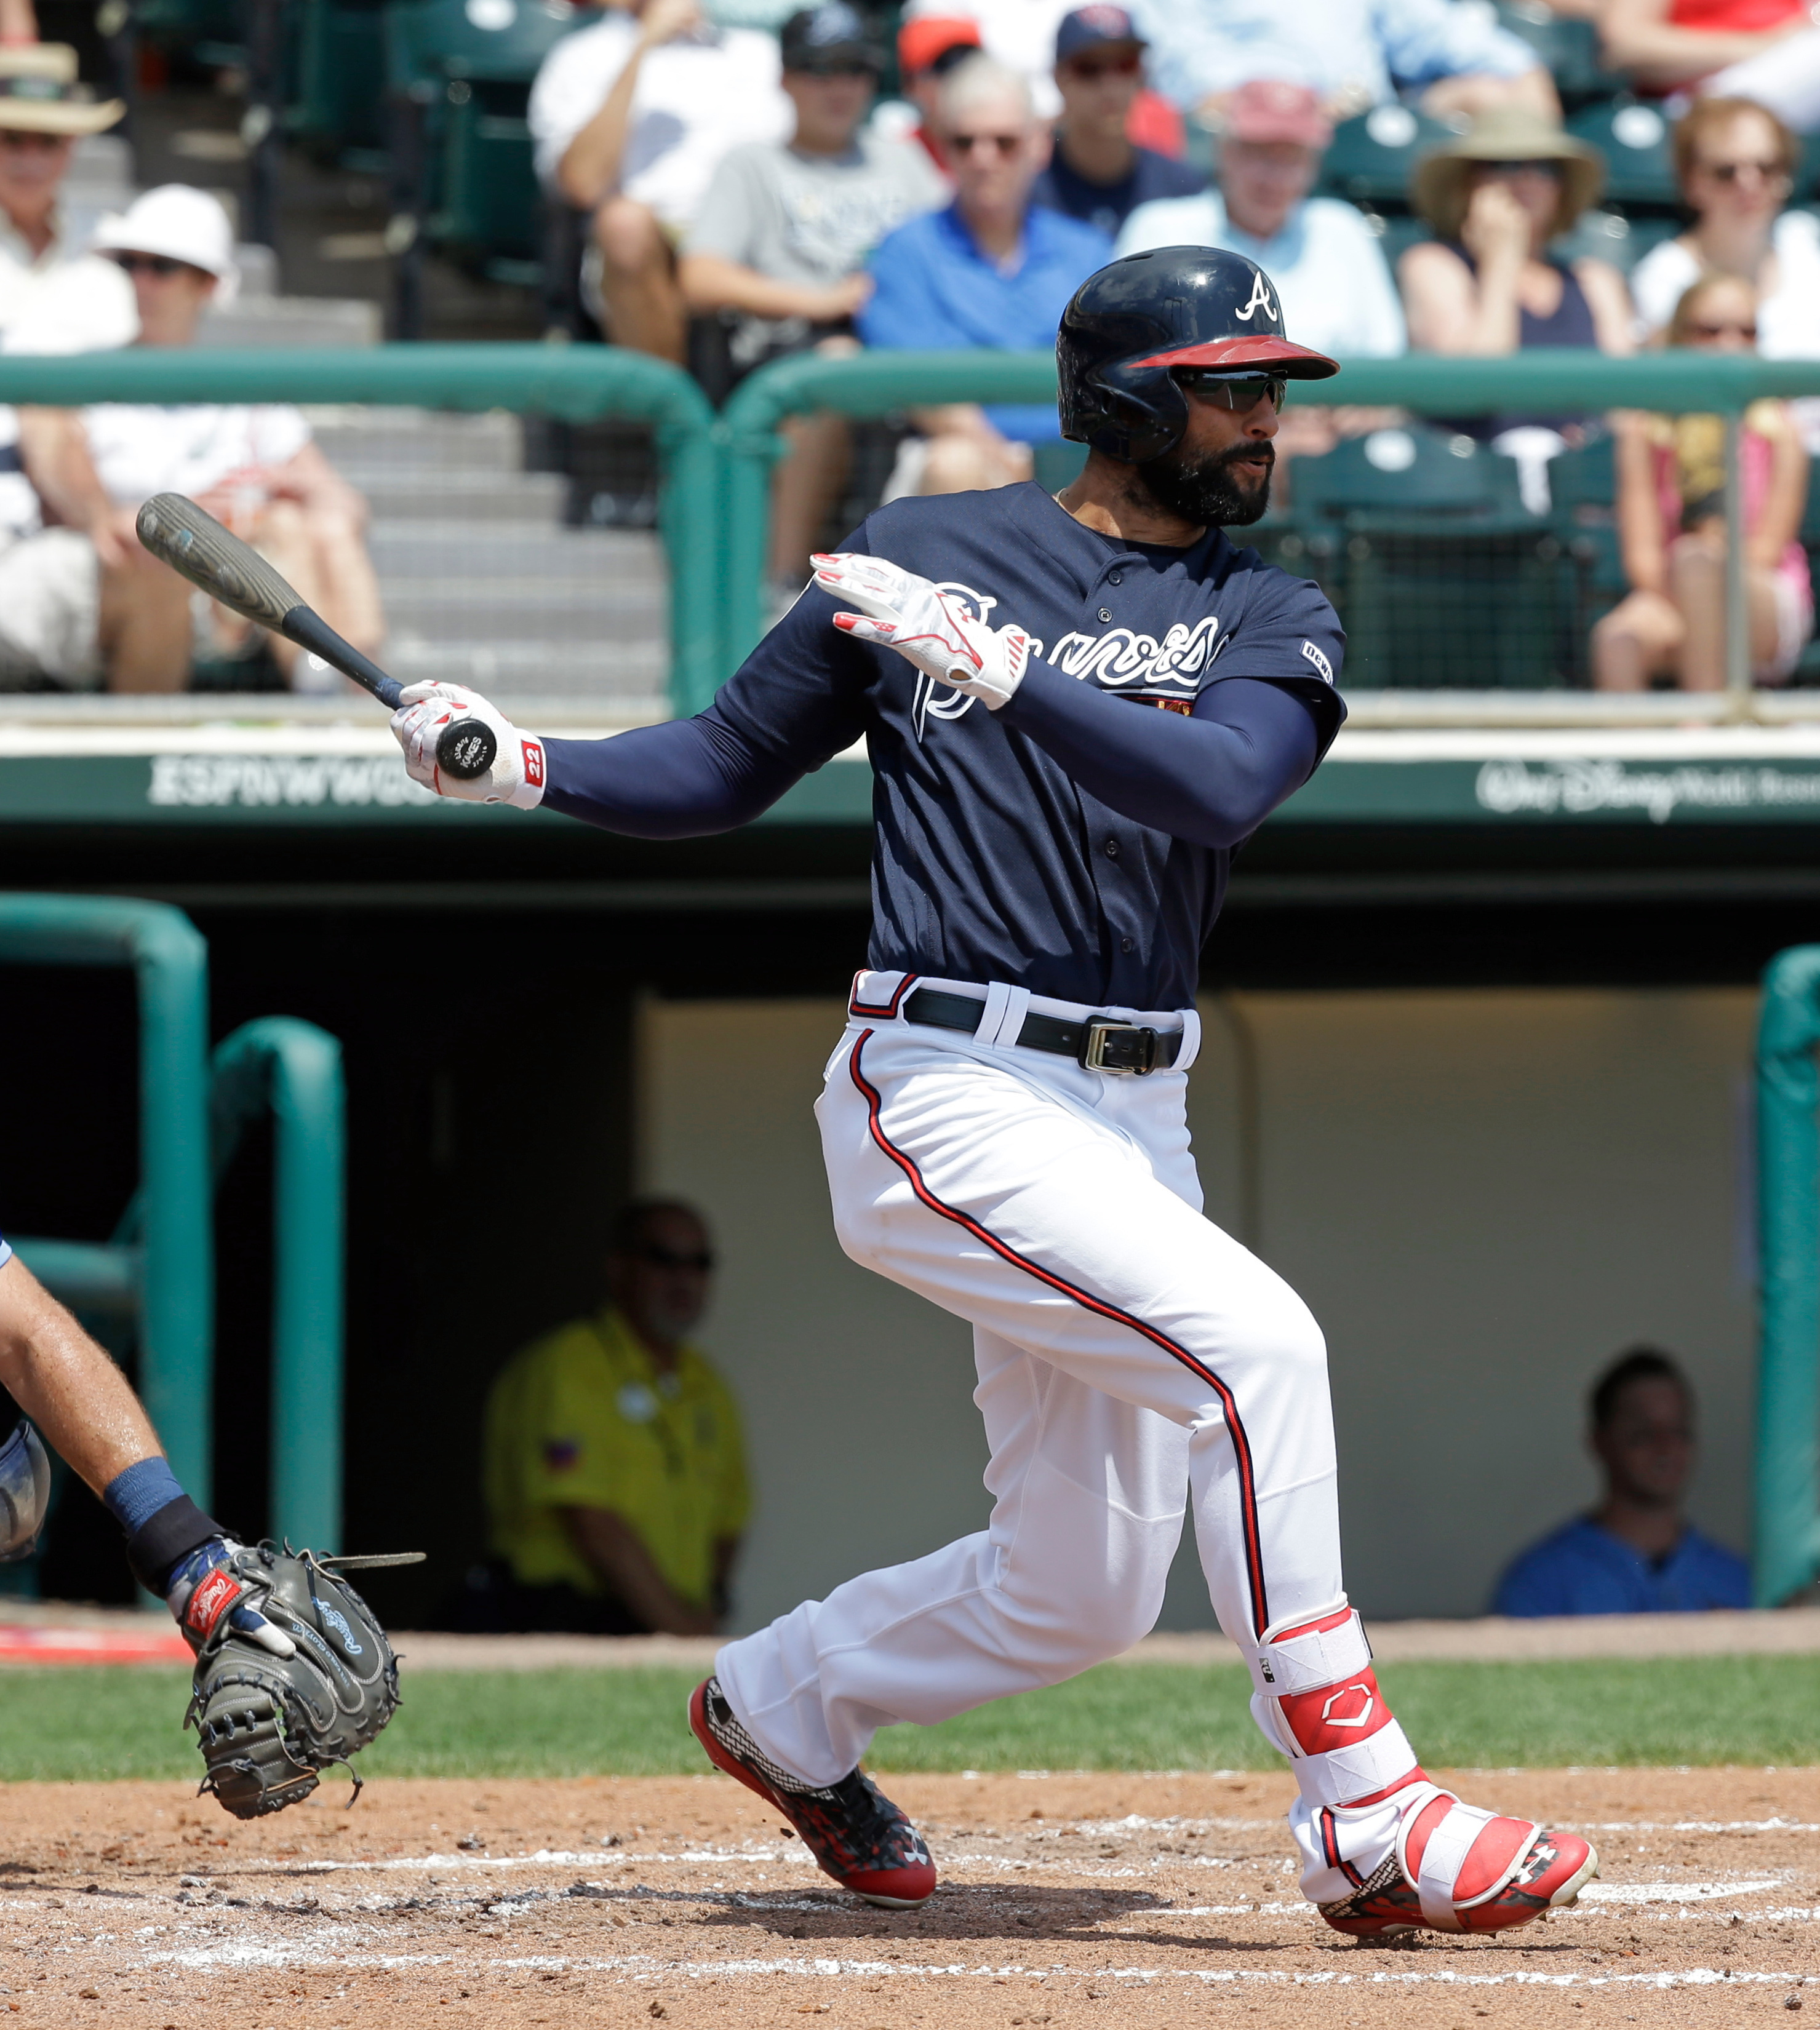 Atlanta Braves' Nick Markakis gets a base hit against the Tampa Bay Rays in the fourth inning of a spring training baseball game, Friday, April 1, 2016, in Kissimmee, Fla. (AP Photo/John Raoux)